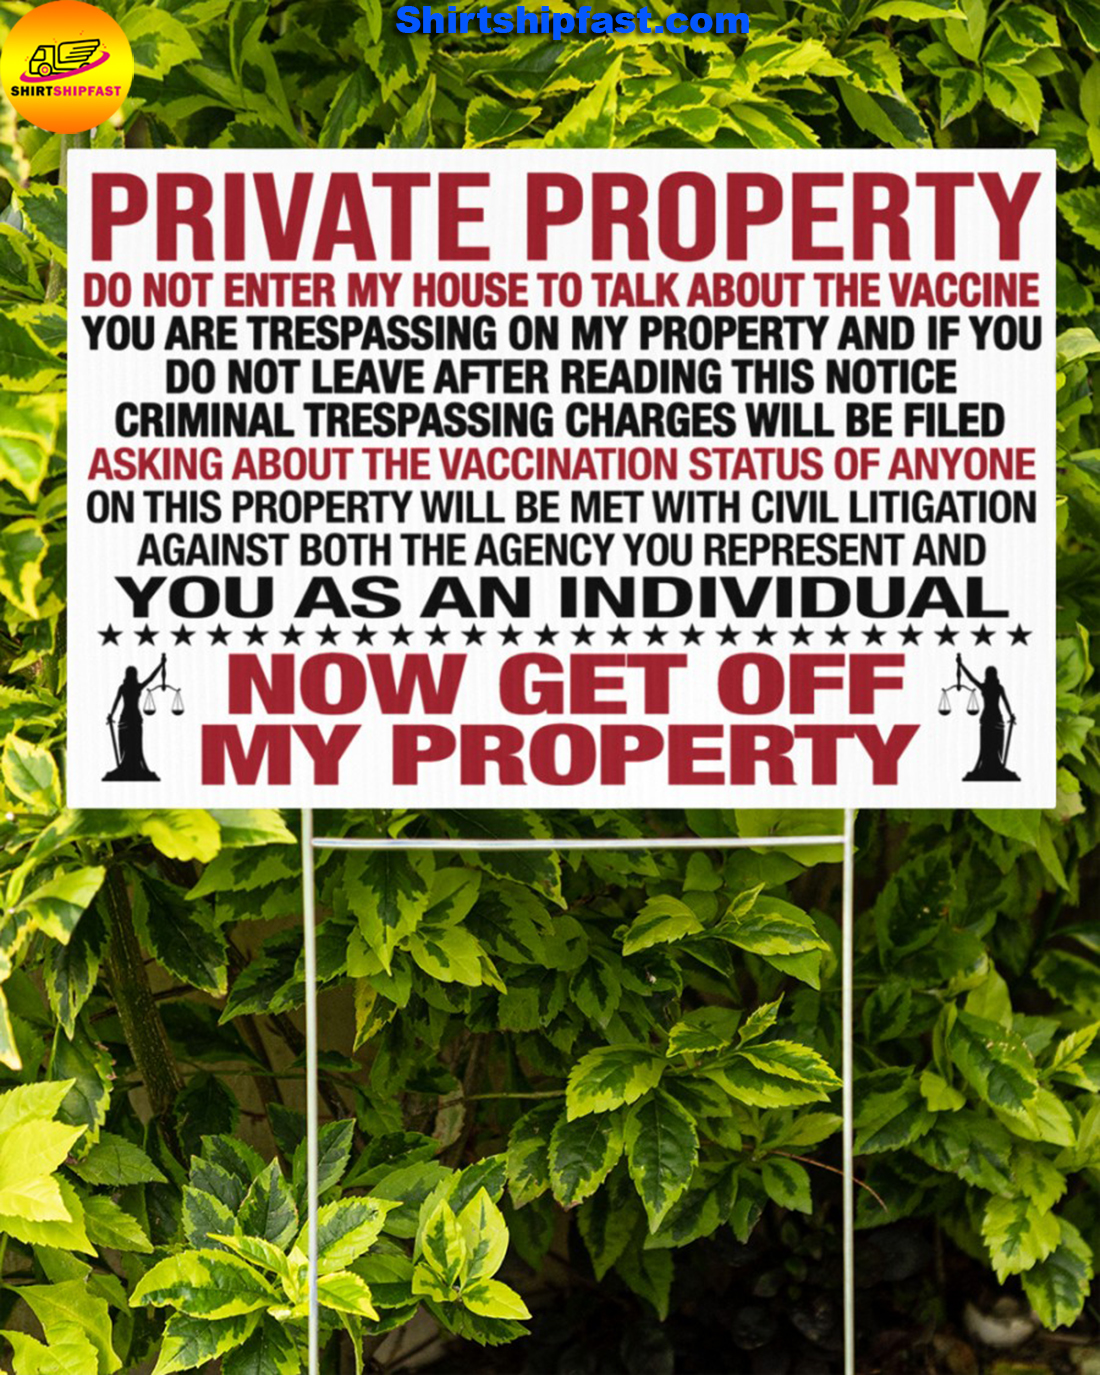 Private property do not enter my house to talk about the vaccine yard signs